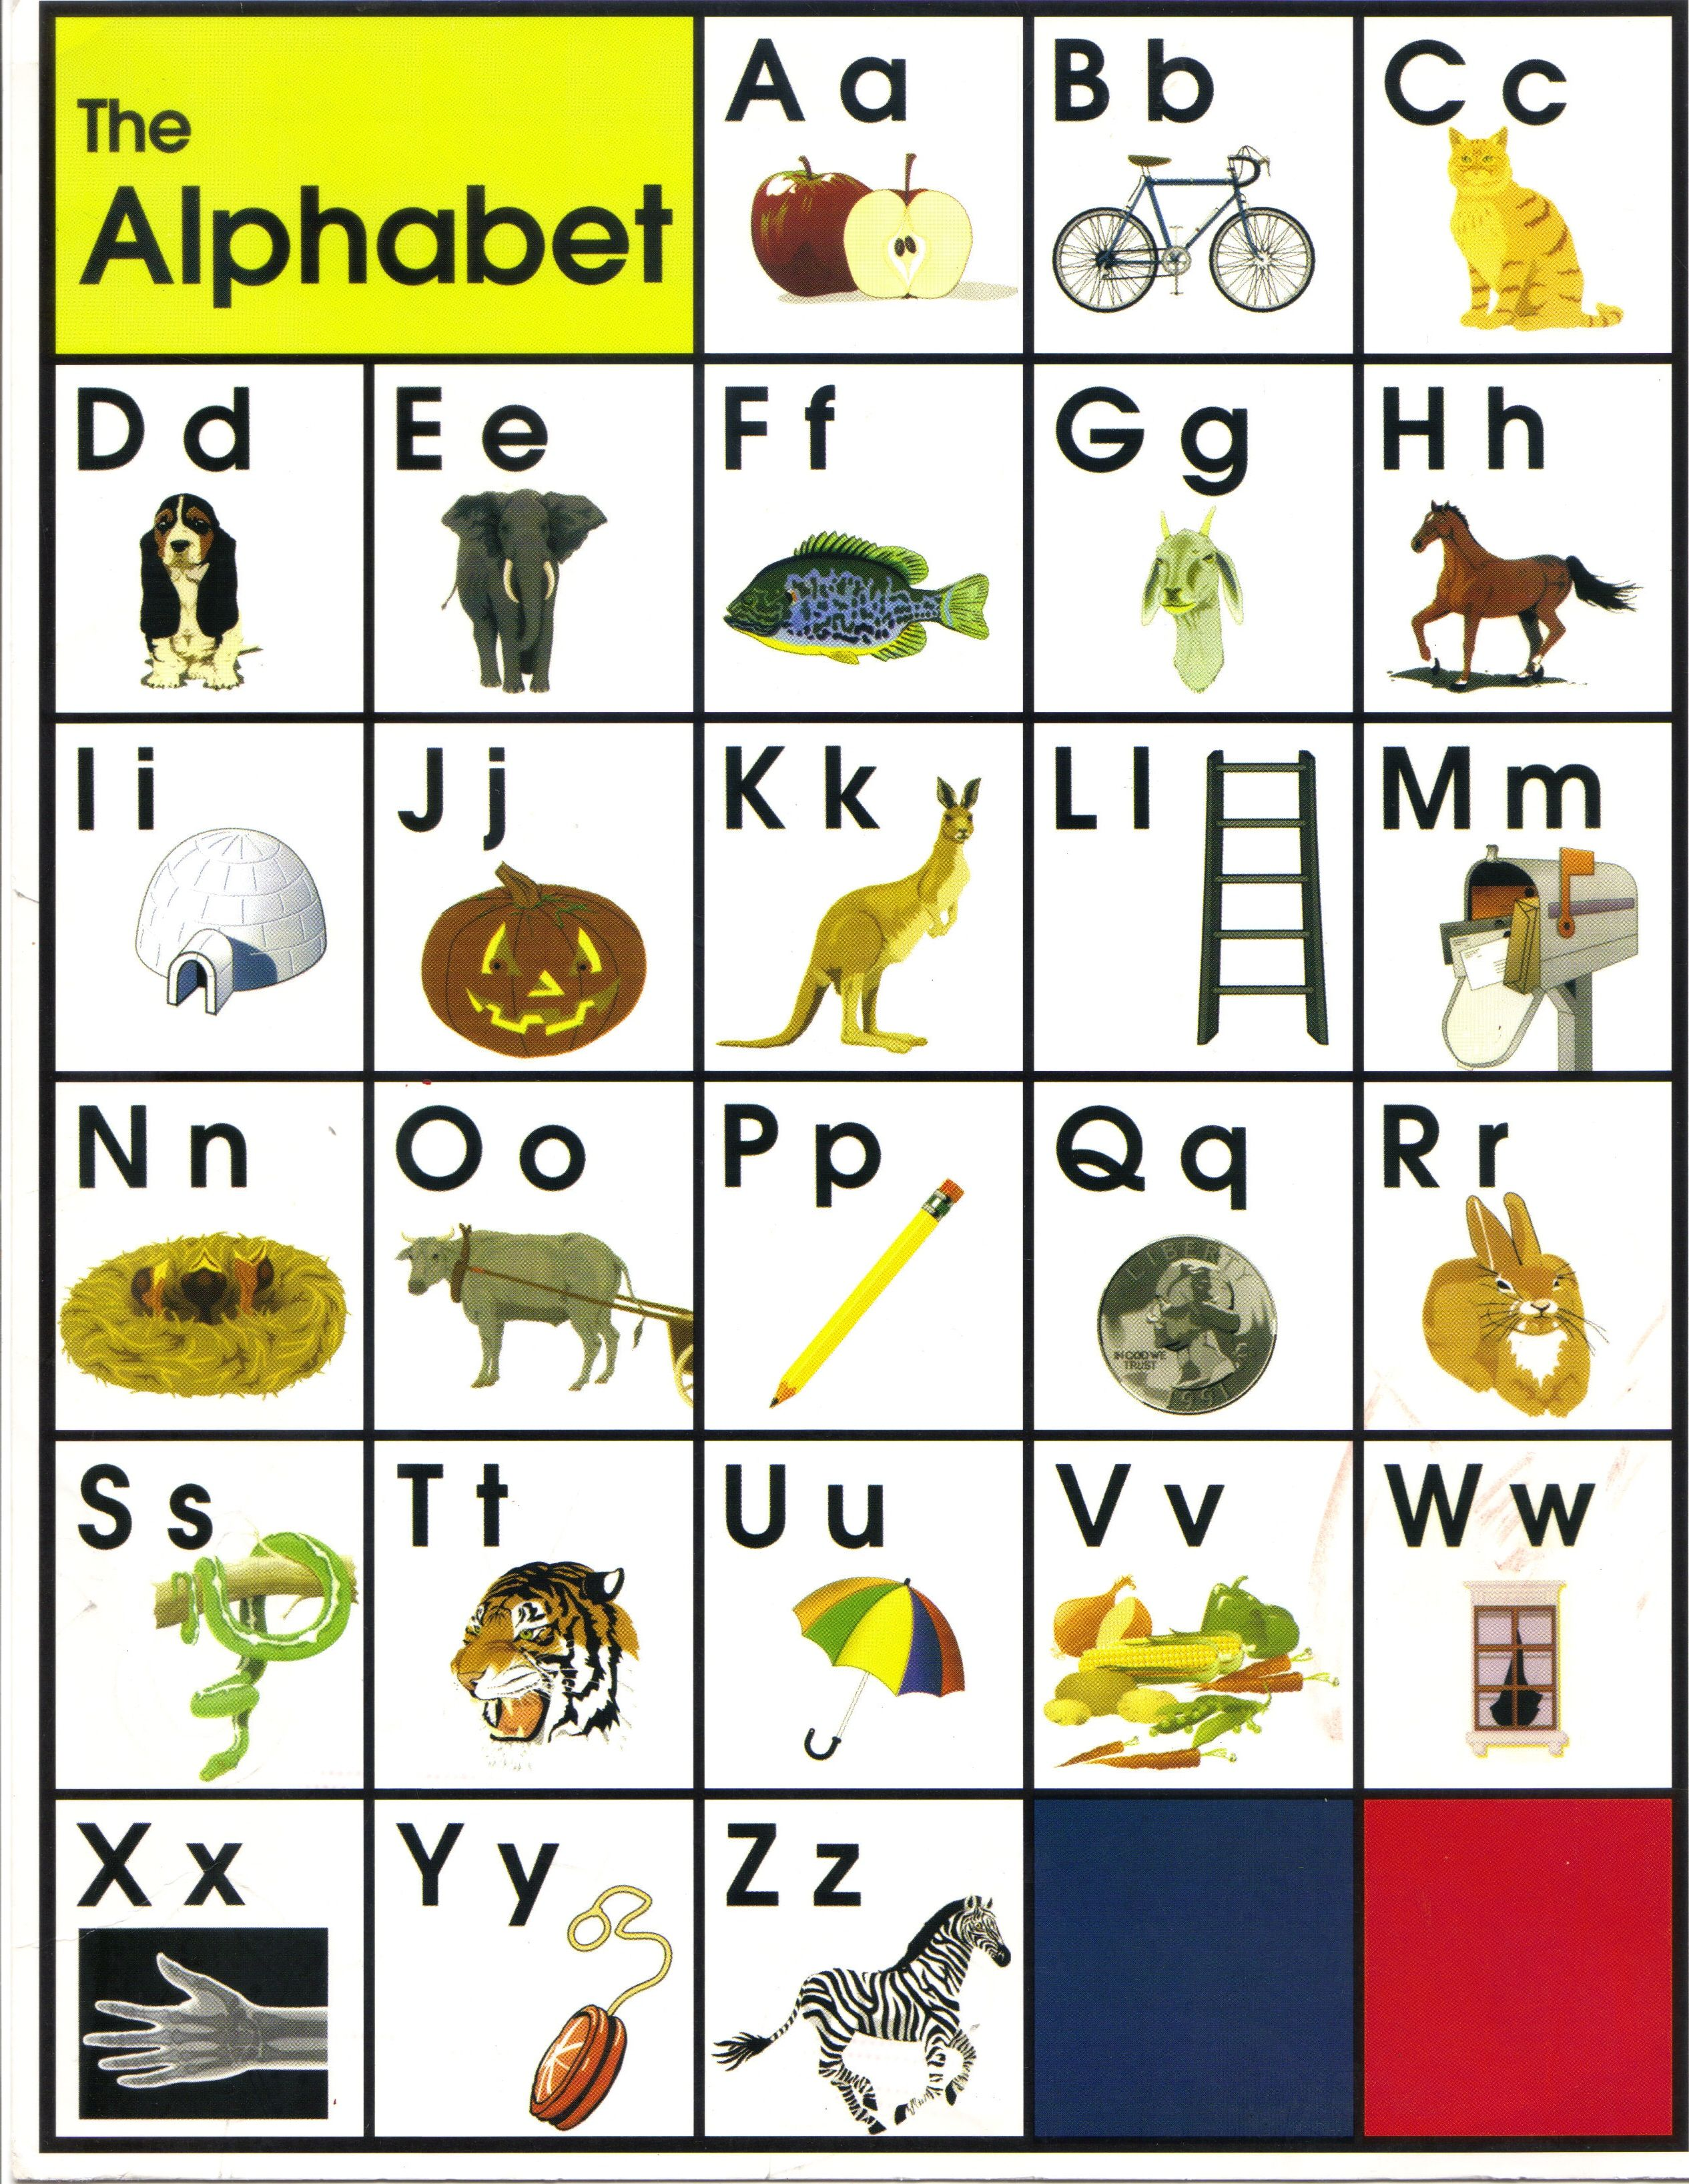 Worksheet Alphabet For Kindergarten alphabet kindergarten laptuoso lets celebrate mrs kilburns kiddos is turning alphabet